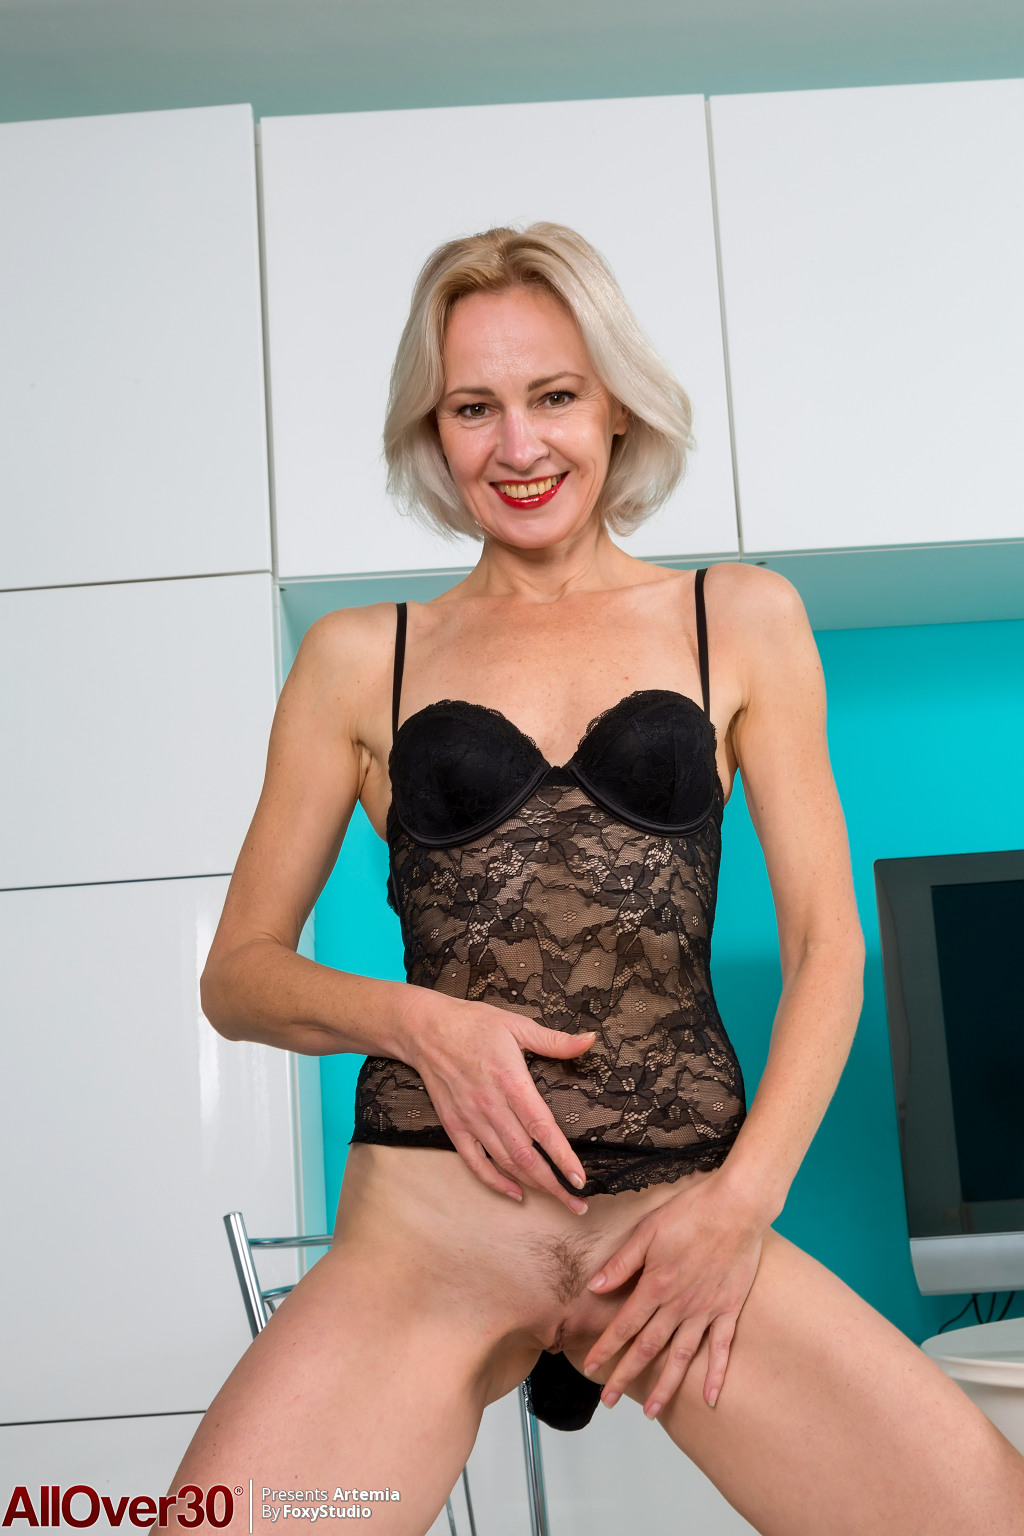 Allover30Freecom- Hot Older Women - 45 Year Old Artemia -9344